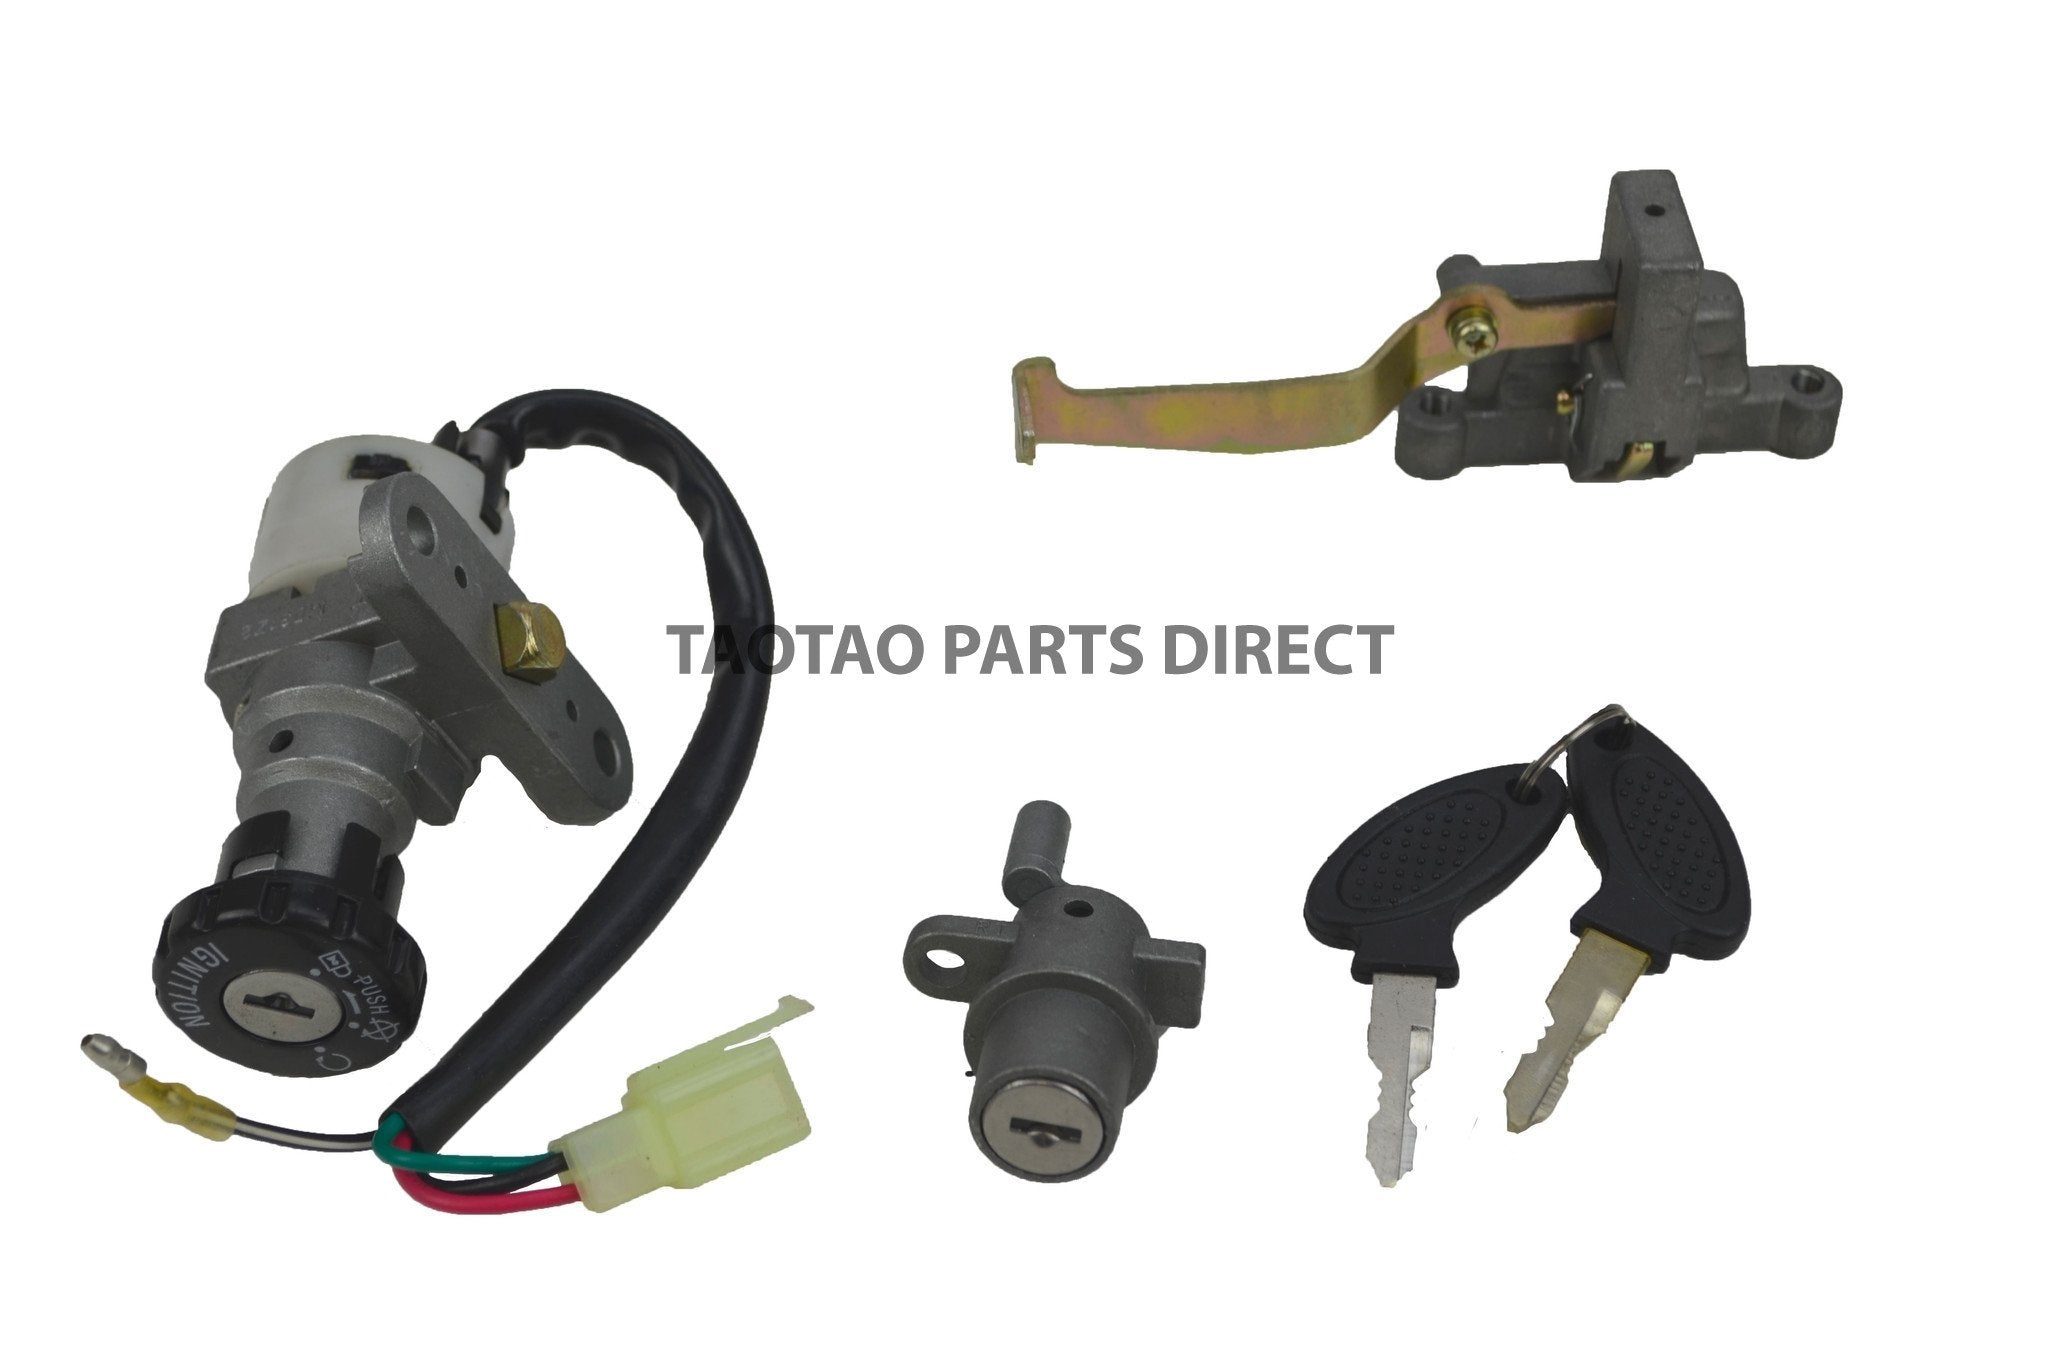 Scooter Parts - CY50B Key Ignition Set